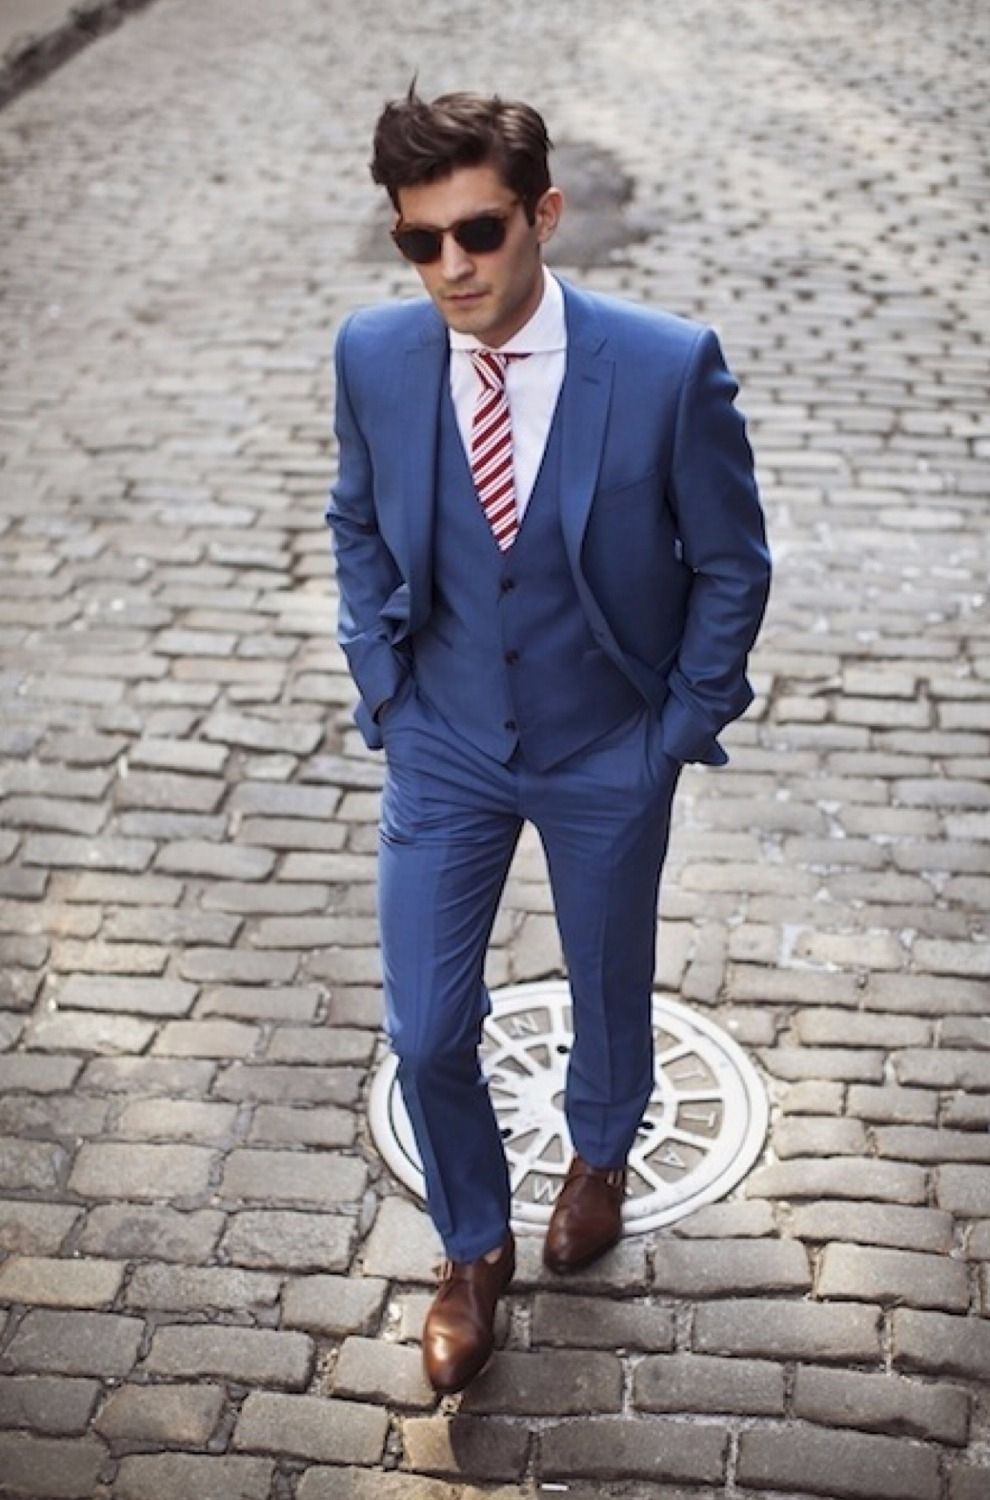 Latest coat pant designs navy blue formal custom made wedding suits